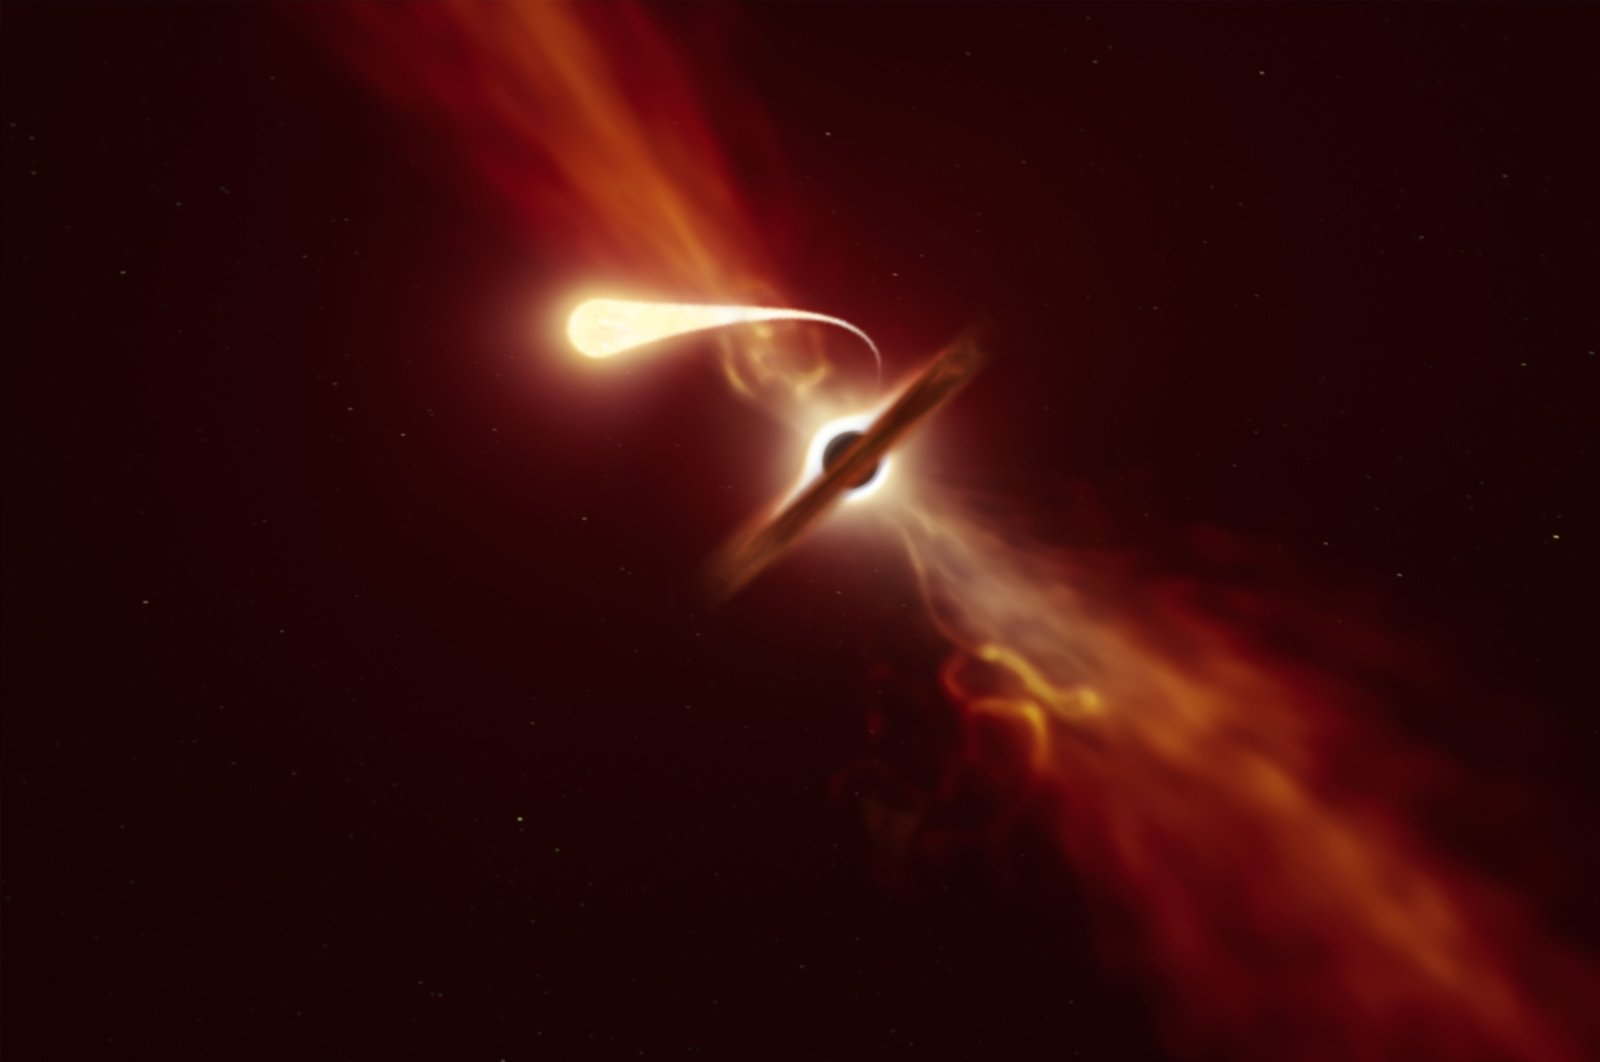 """An illustration depicts a star (in the foreground) experiencing """"spaghettification"""" as it is sucked in by a supermassive black hole (in the background) during a """"tidal disruption event,"""" released Oct. 12, 2020. (Photo by M. Kornmesser / European Southern Observatory / AFP)"""